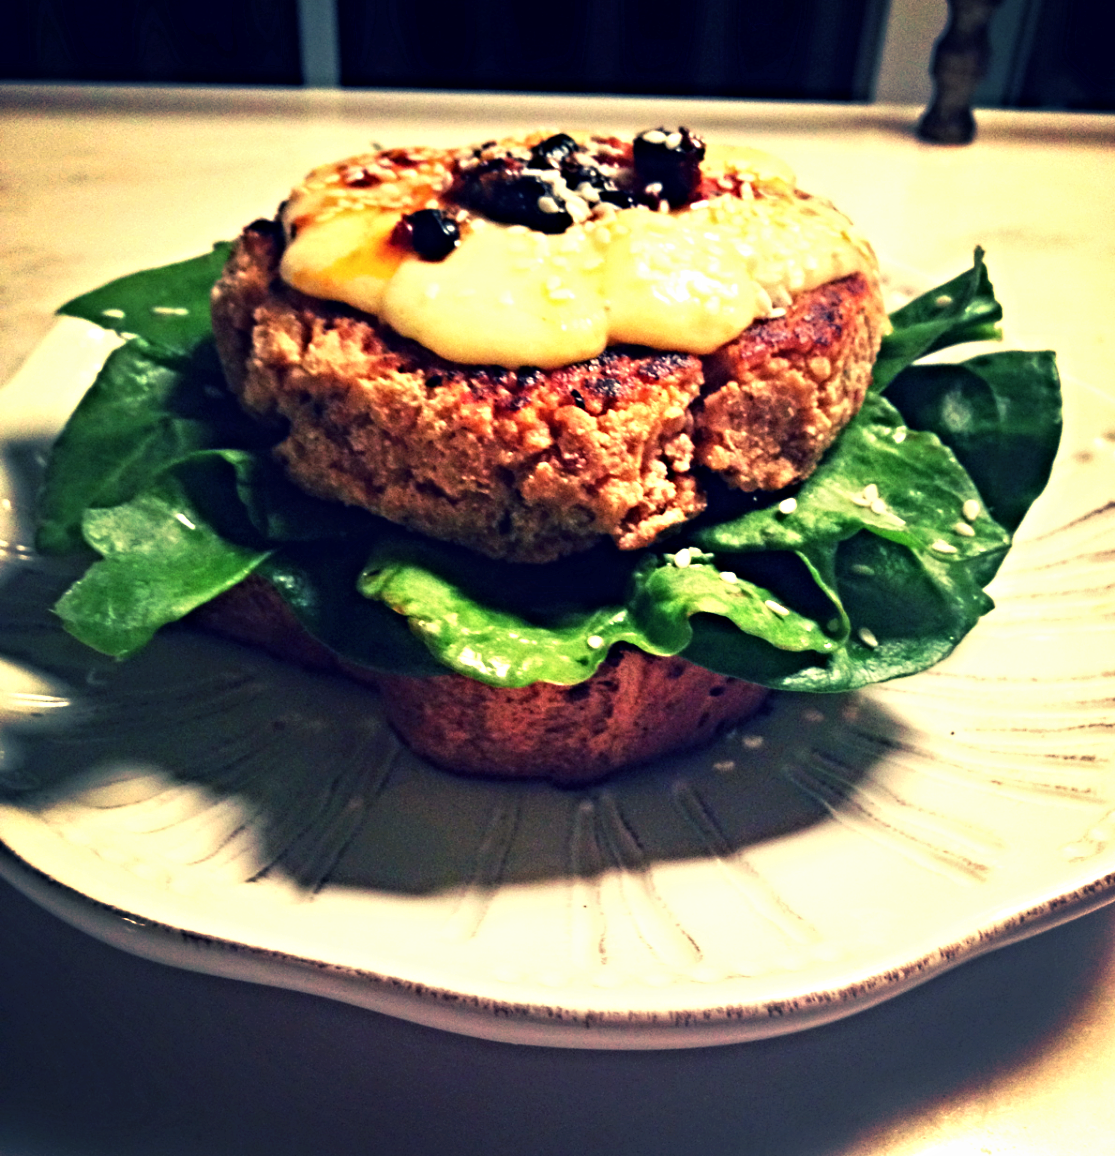 To serve it: I threw some Irish cheese on top, put in on a thick slice of crusty, whole grain bread, added some yellow chard and sorrel leaves for a lemon-ey flavor, then topped it off with a bit of pepper oil and sesame seeds.